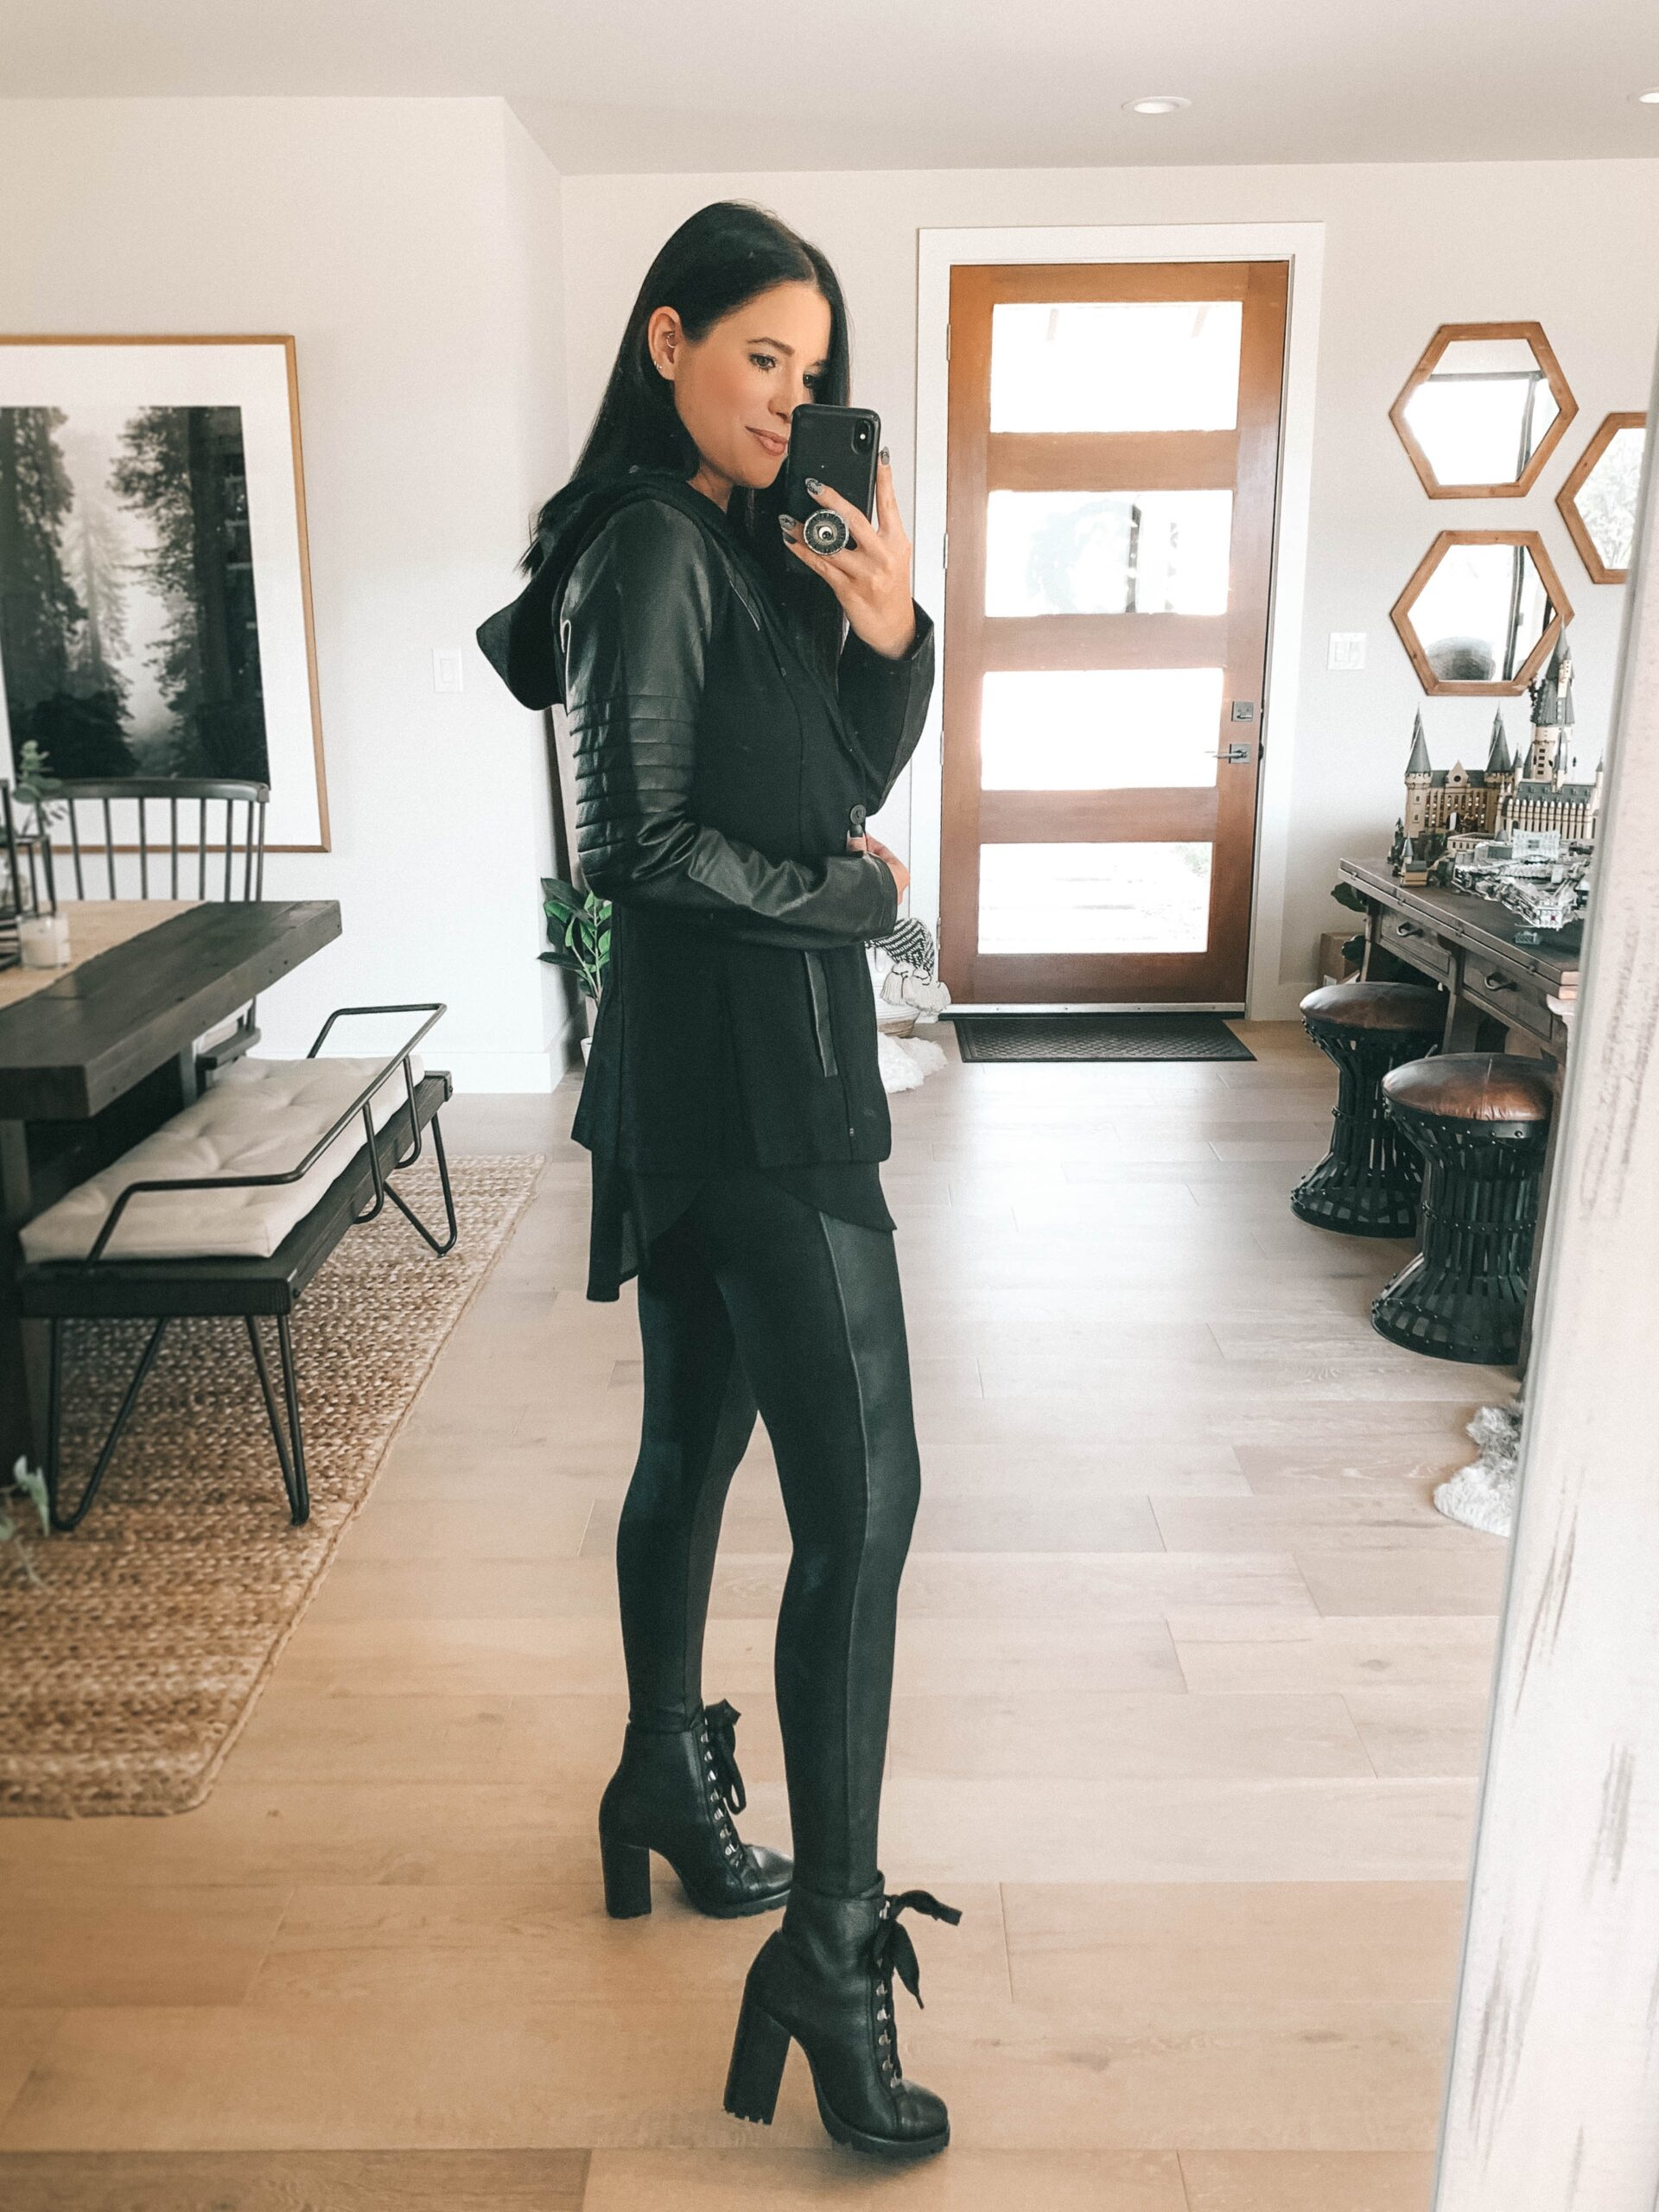 Nordstrom Anniversary Sale by popular Austin fashion blog, Dressed to Kill: image of a woman wearing a black jacket, black top, black faux leather leggings, and black block heel combat boots.